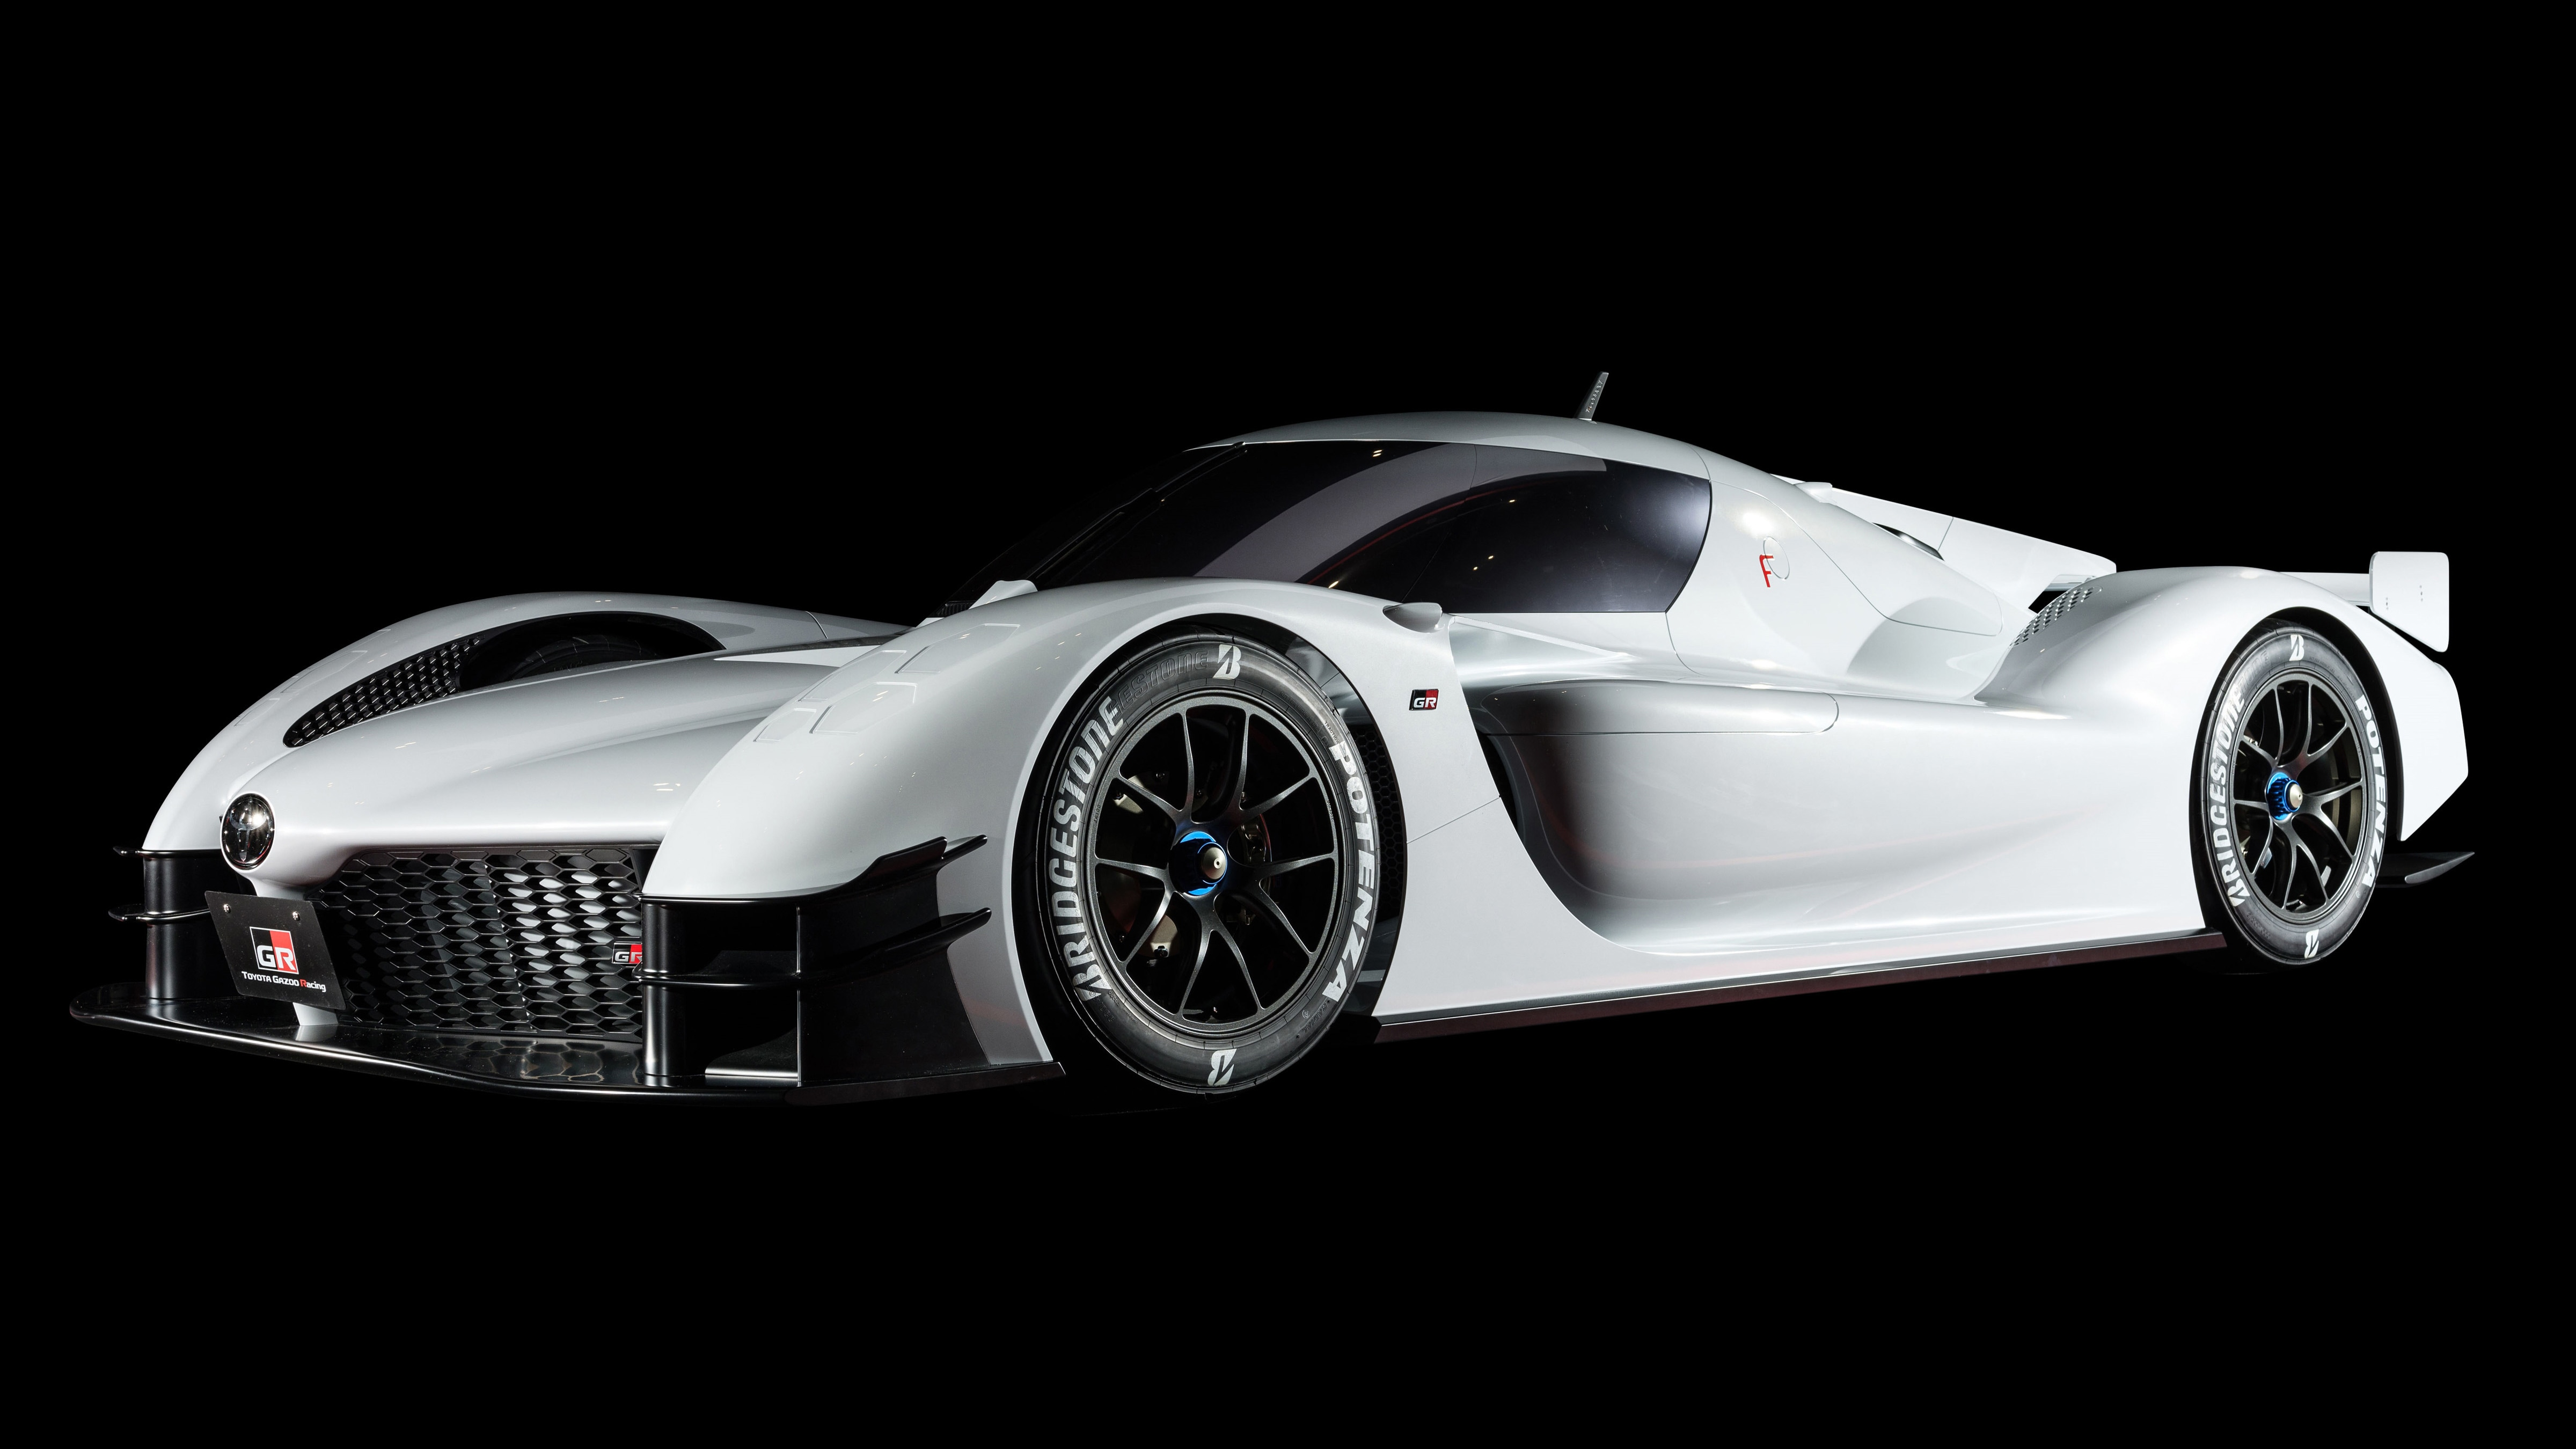 Toyota has Confirmed Development of a Road-going Hypercar 3